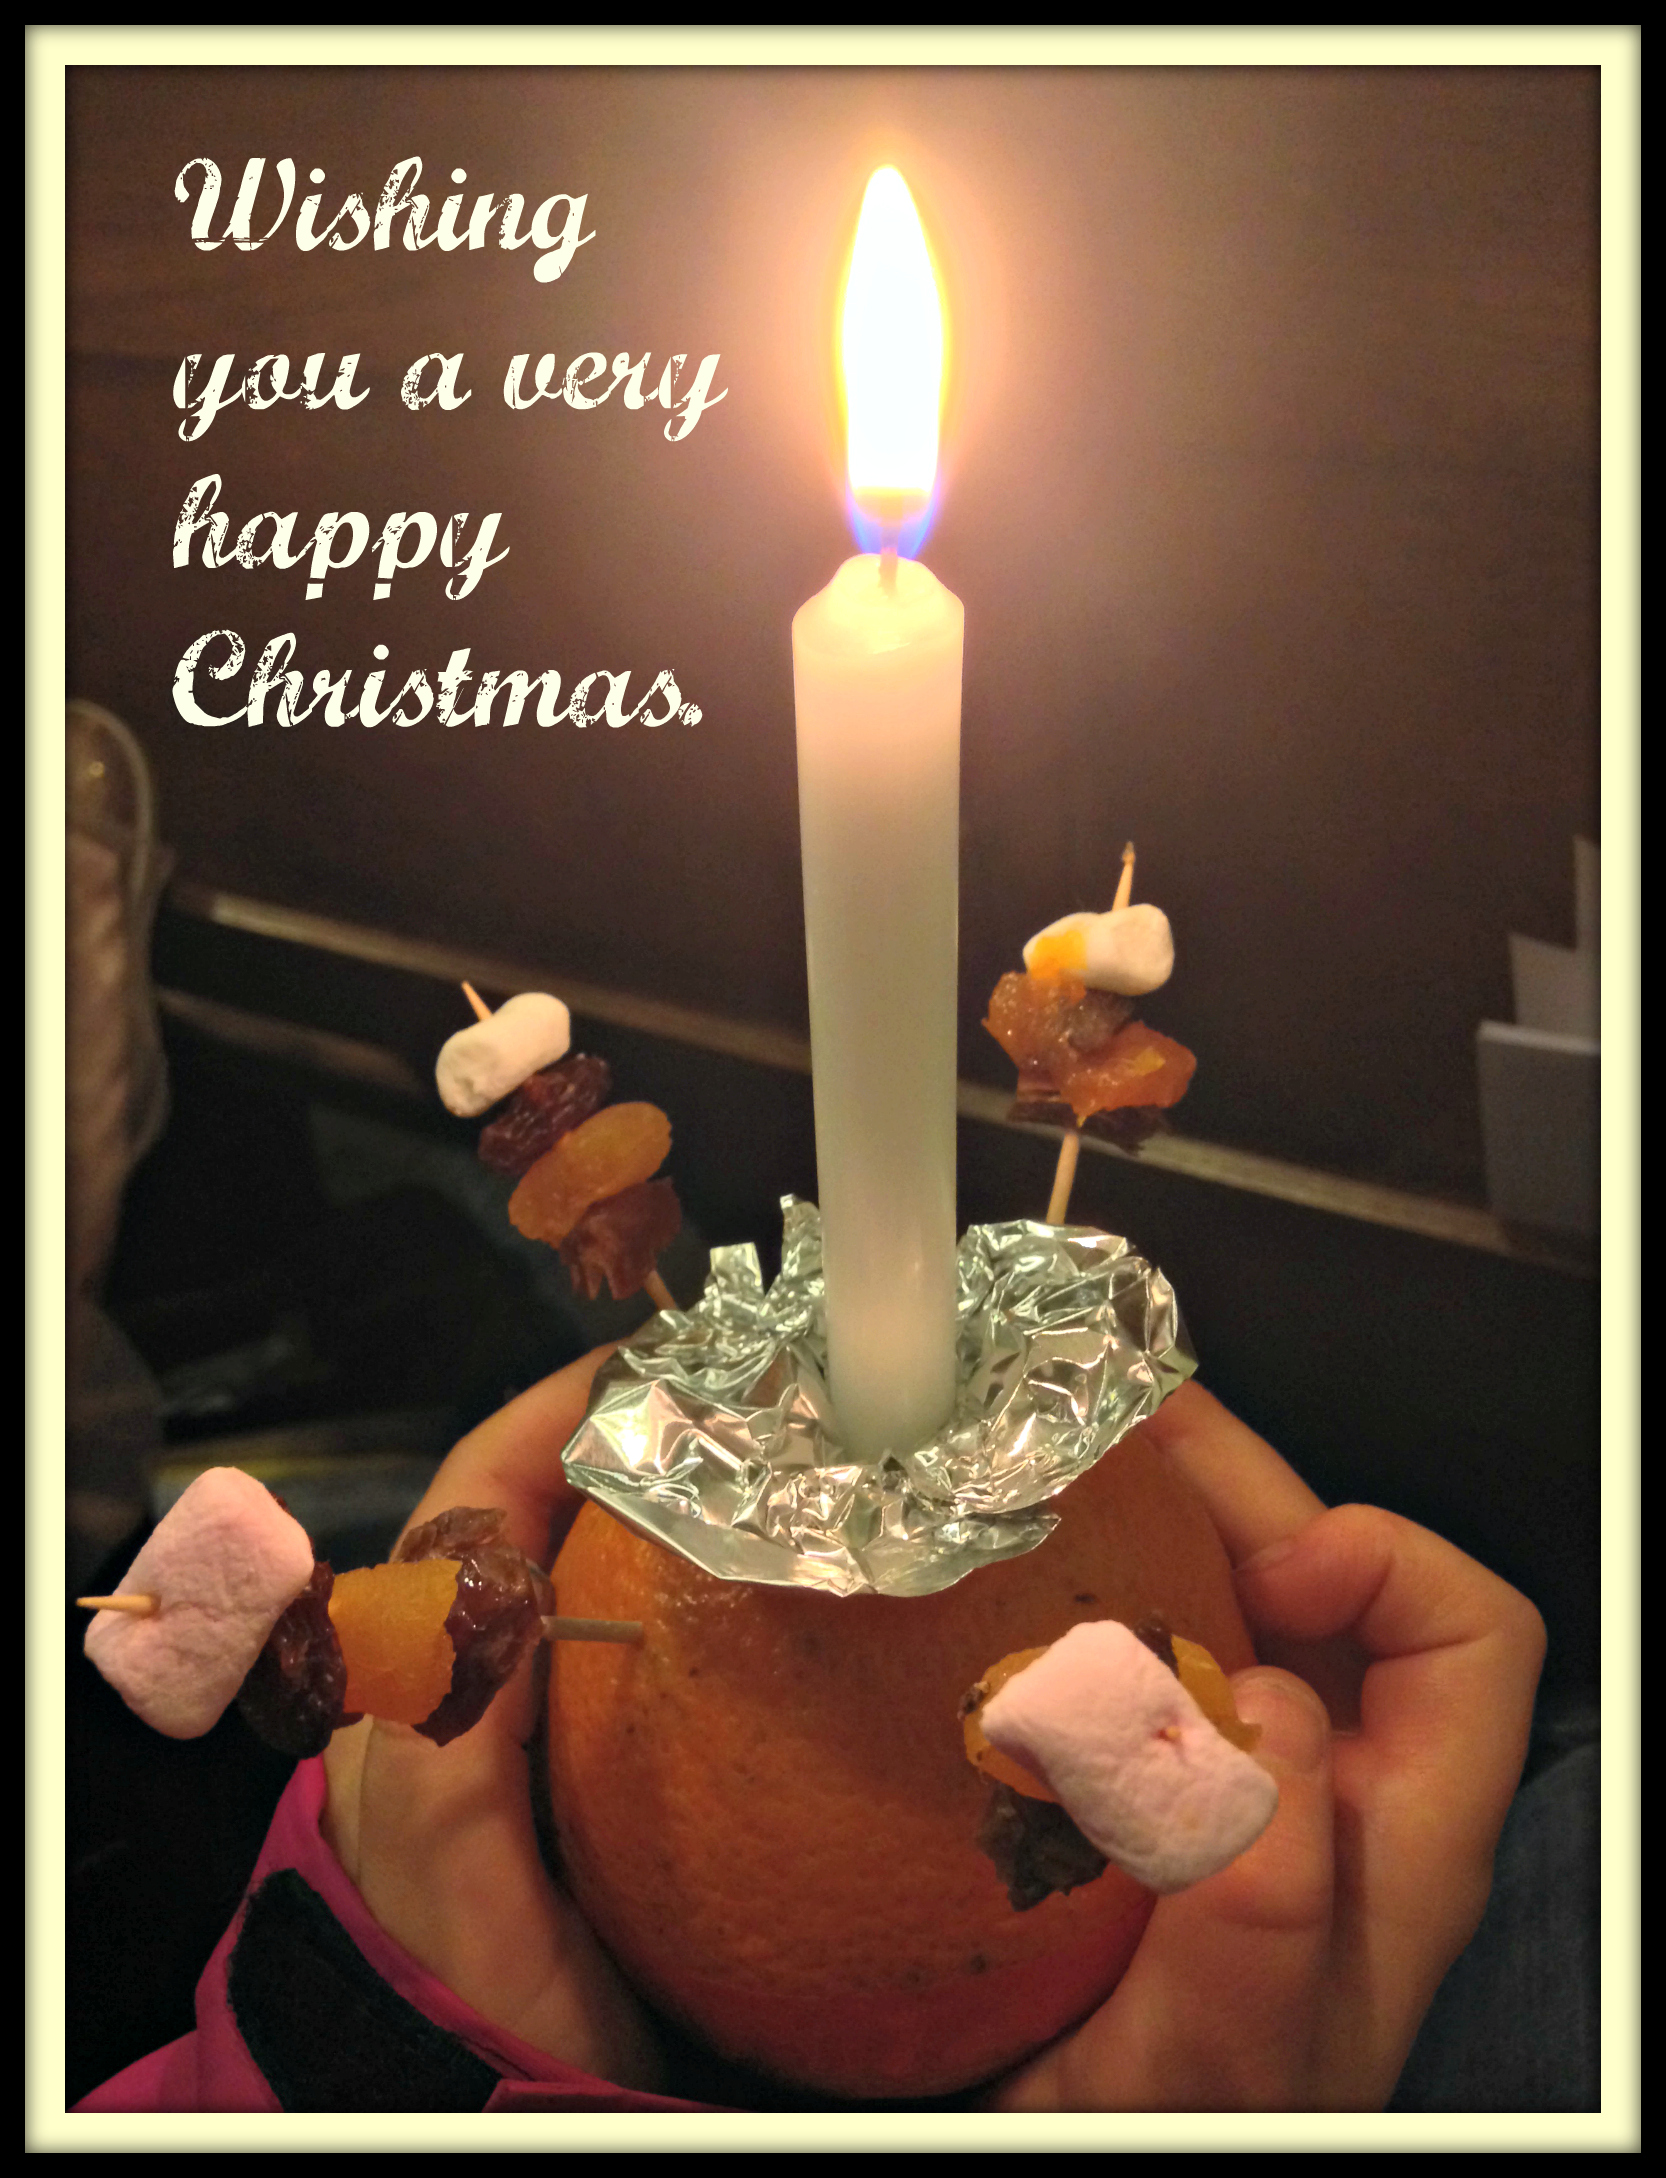 Wishing you all a very happy, peaceful Christmas